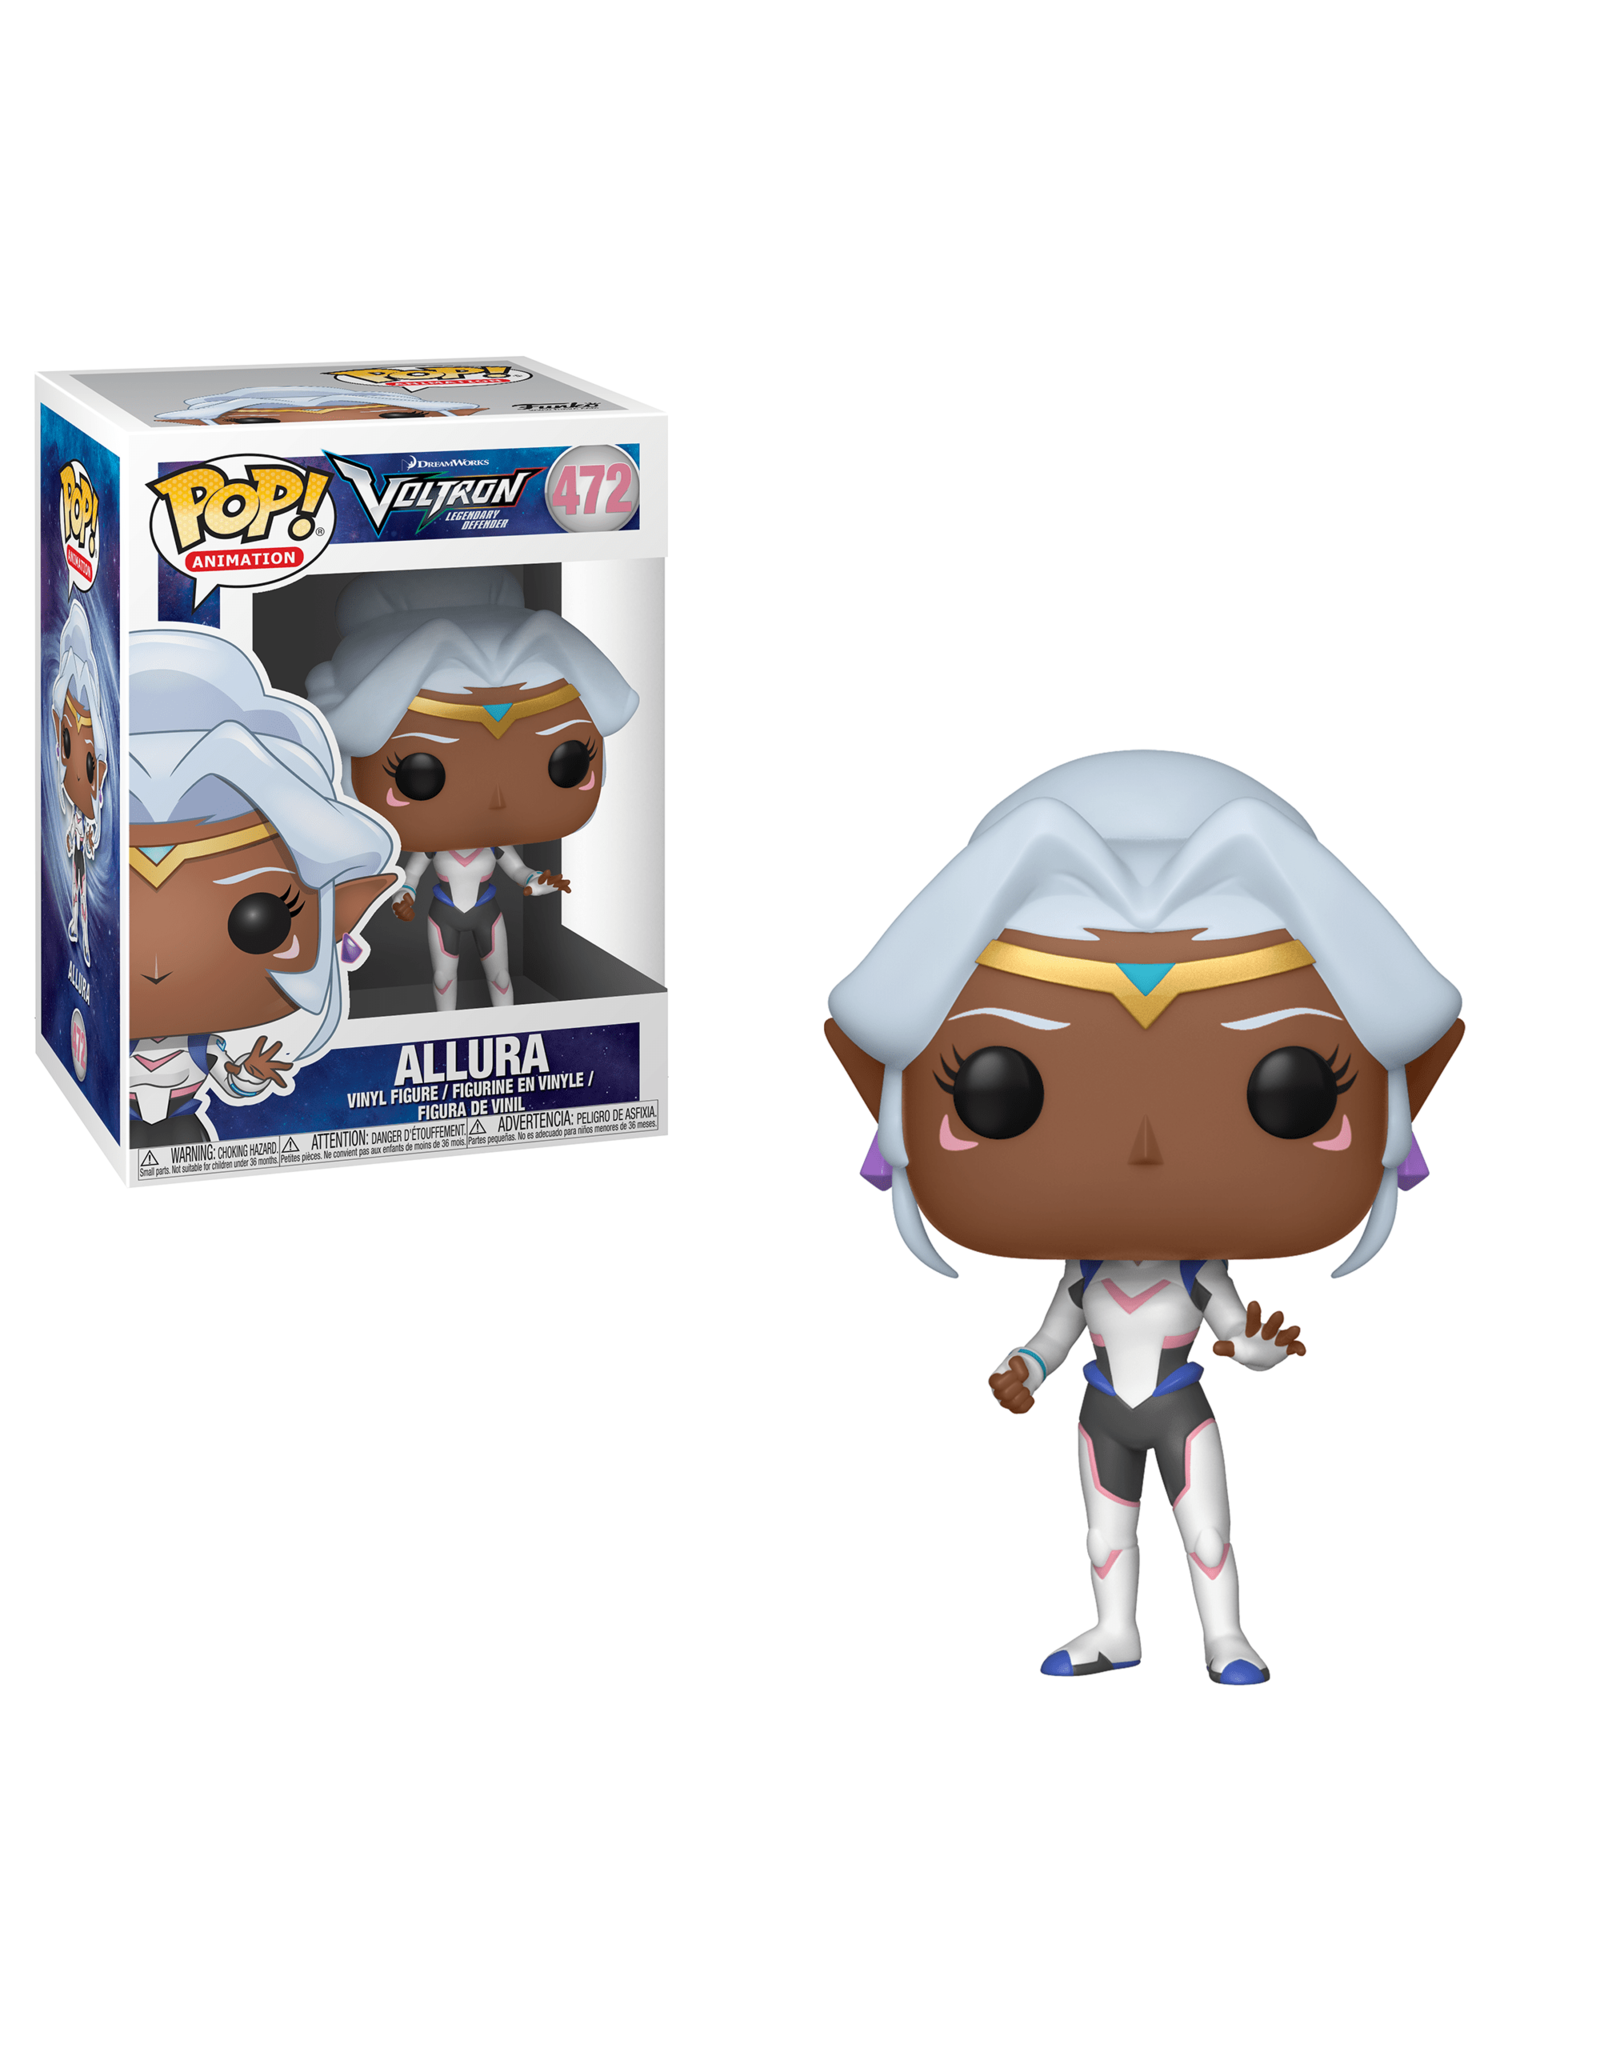 FUNKO POP VOLTRON ALLURA VINYL FIG